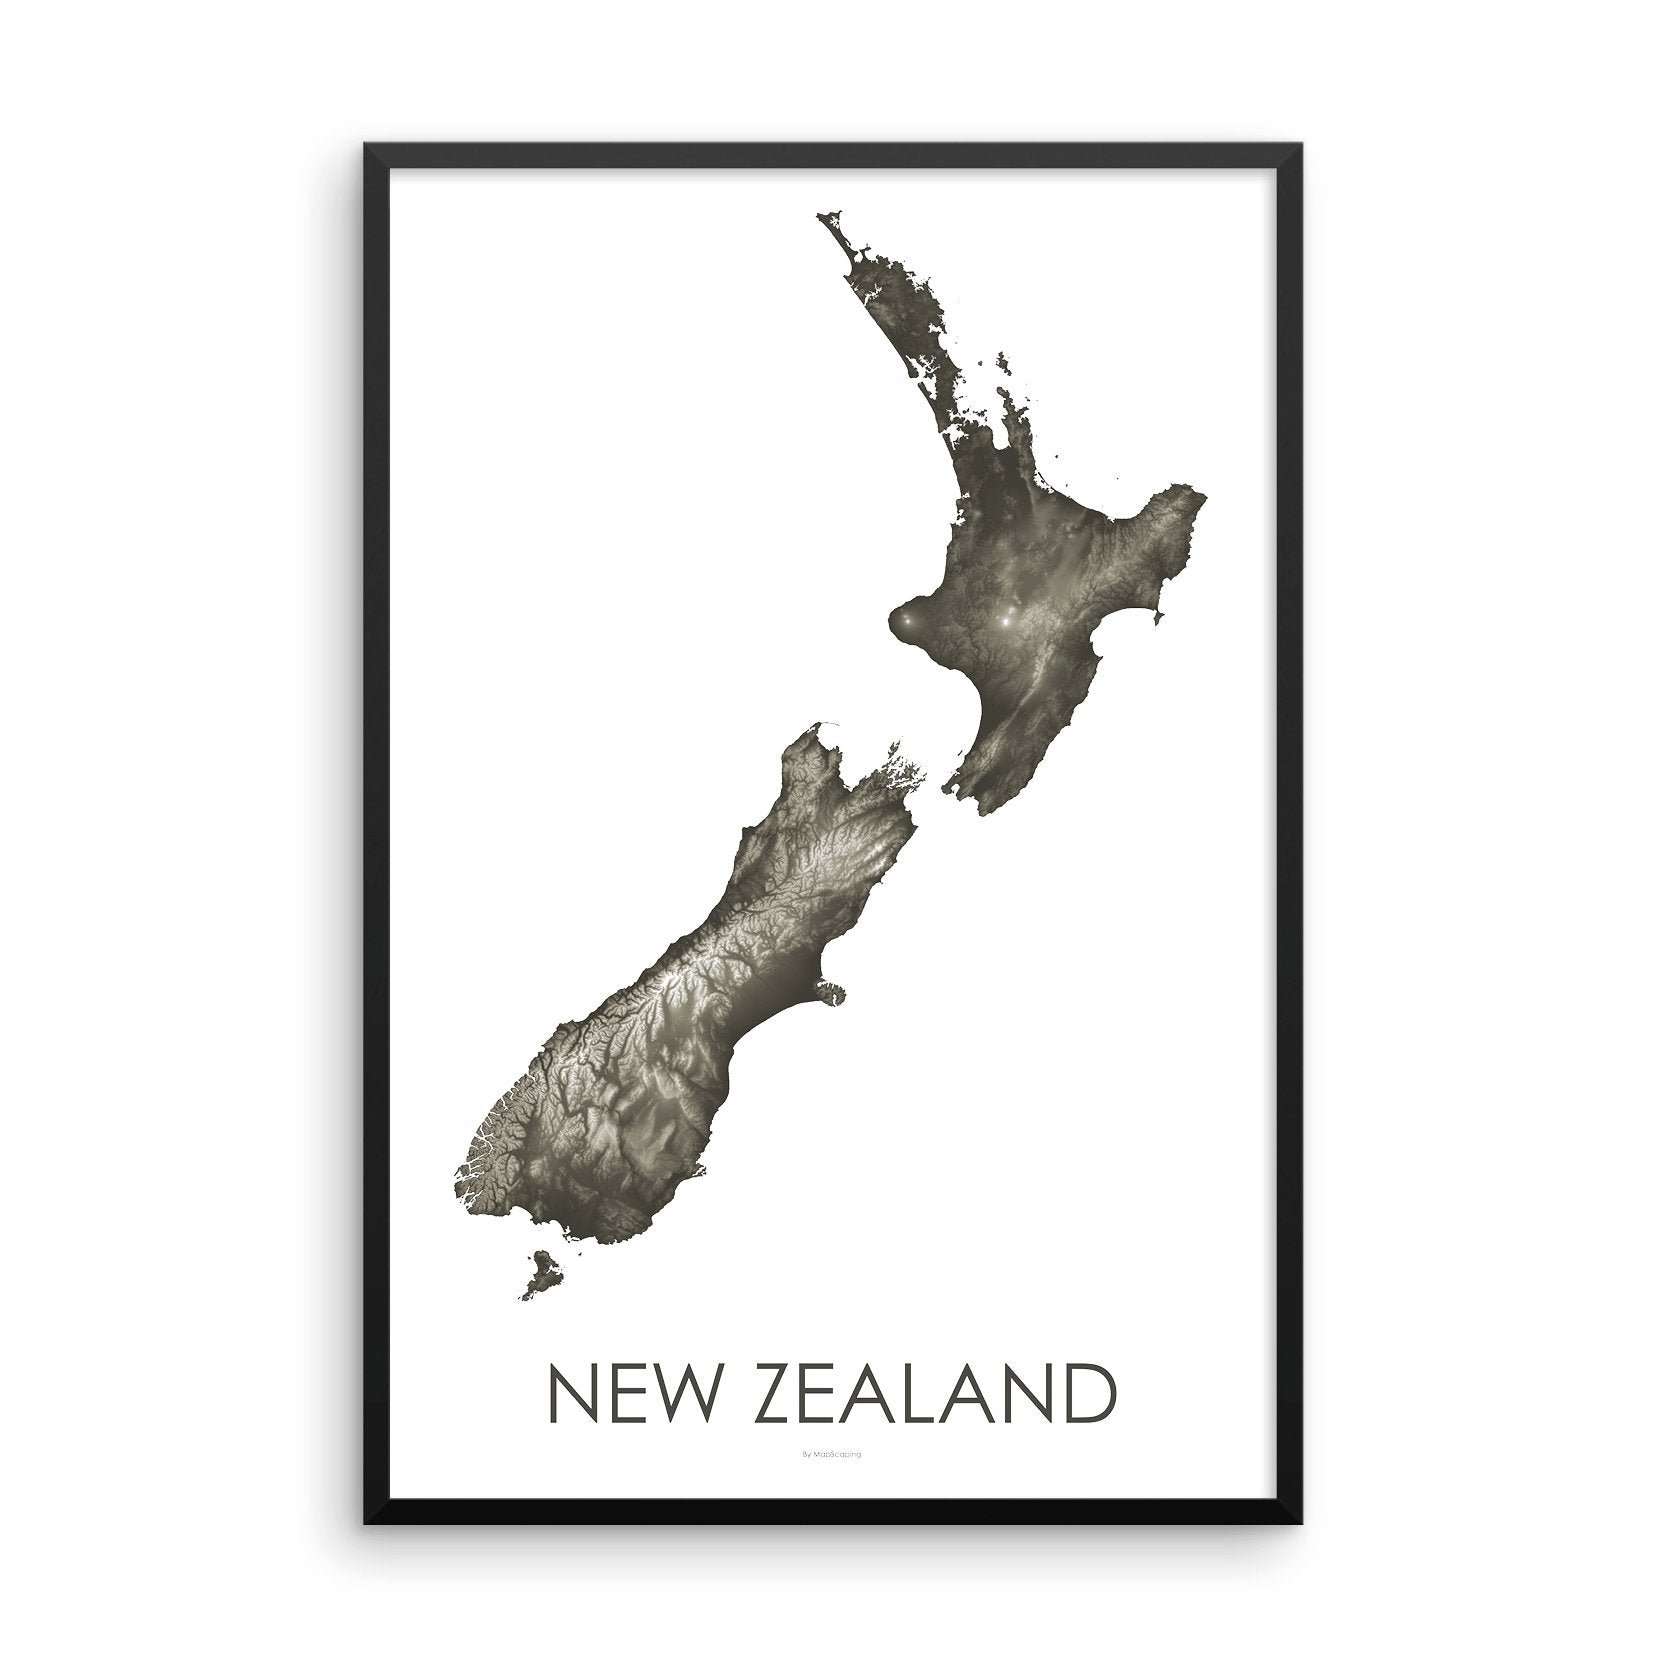 Framed gray or slate poster map of New Zealand's North and South Islands, detailed map print showing the mountains of New Zealand's landscape.